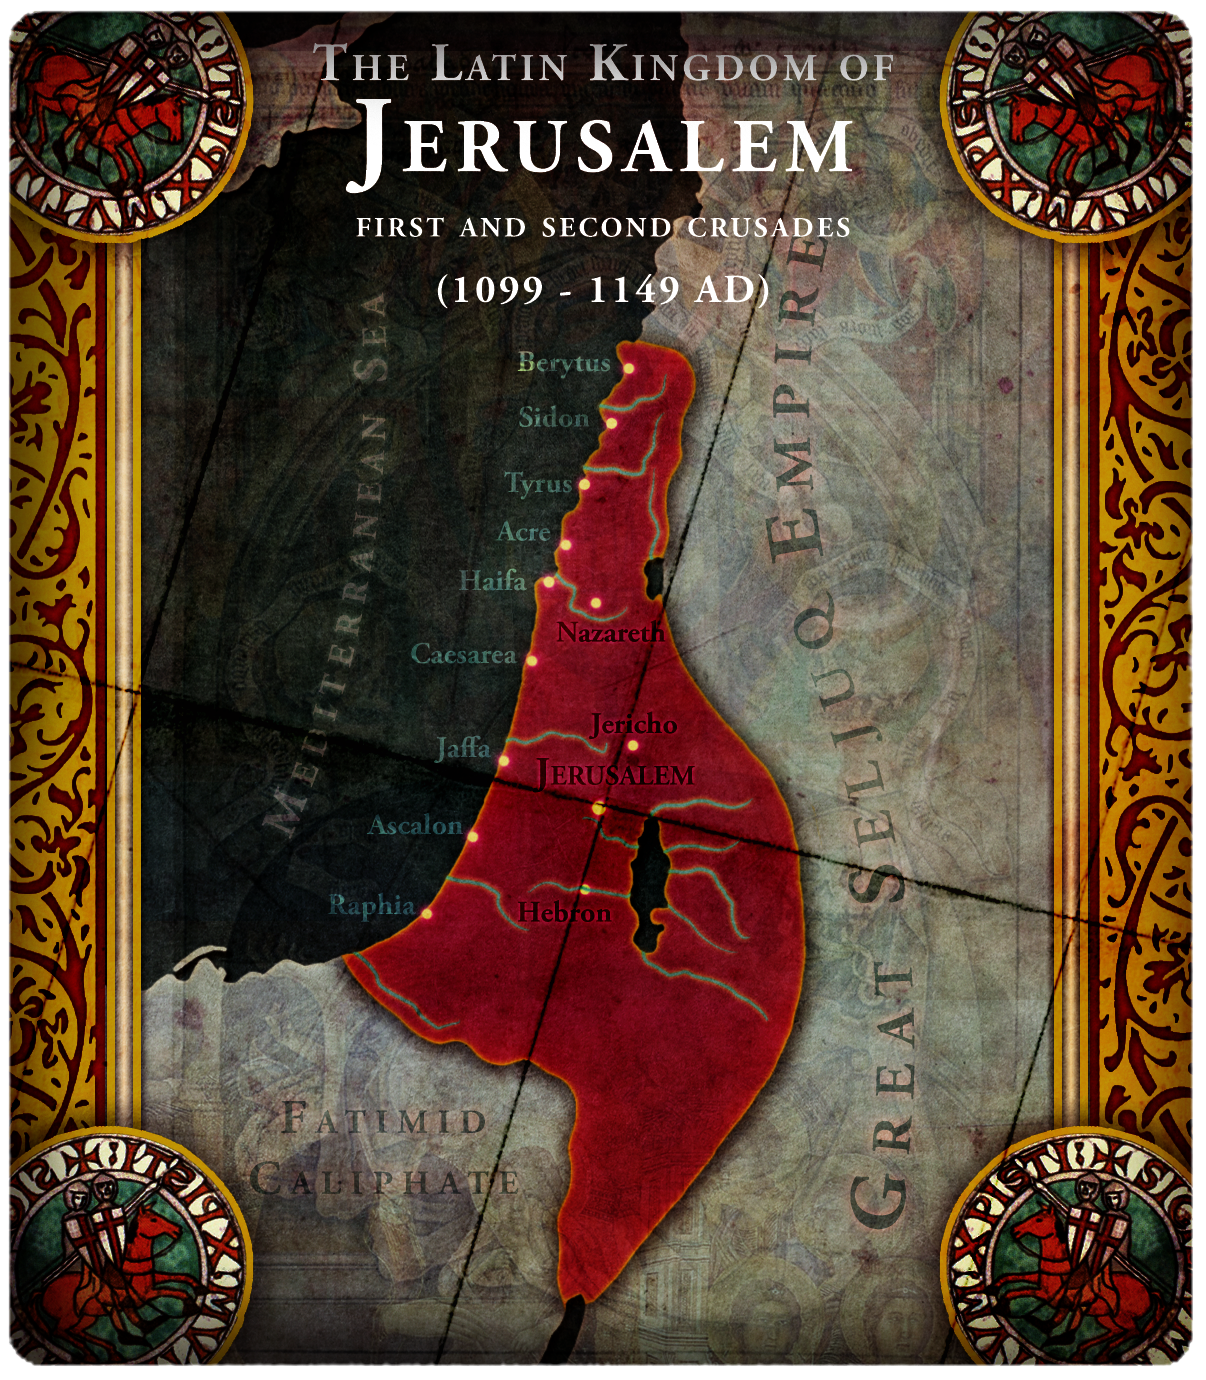 Jerusalem (Baldwin III)   Civilization V Customisation Wiki   FANDOM on beirut on map, islam on map, constantinople on map, damascus on map, rome on map, medina on map, london on map, israel map, aleppo on map, baghdad on map, amman on map, cairo on map, golan heights on map, alexandria on map, mecca on map, middle east on map, kabul on map, juba on map, gaza on map, tel aviv on map,